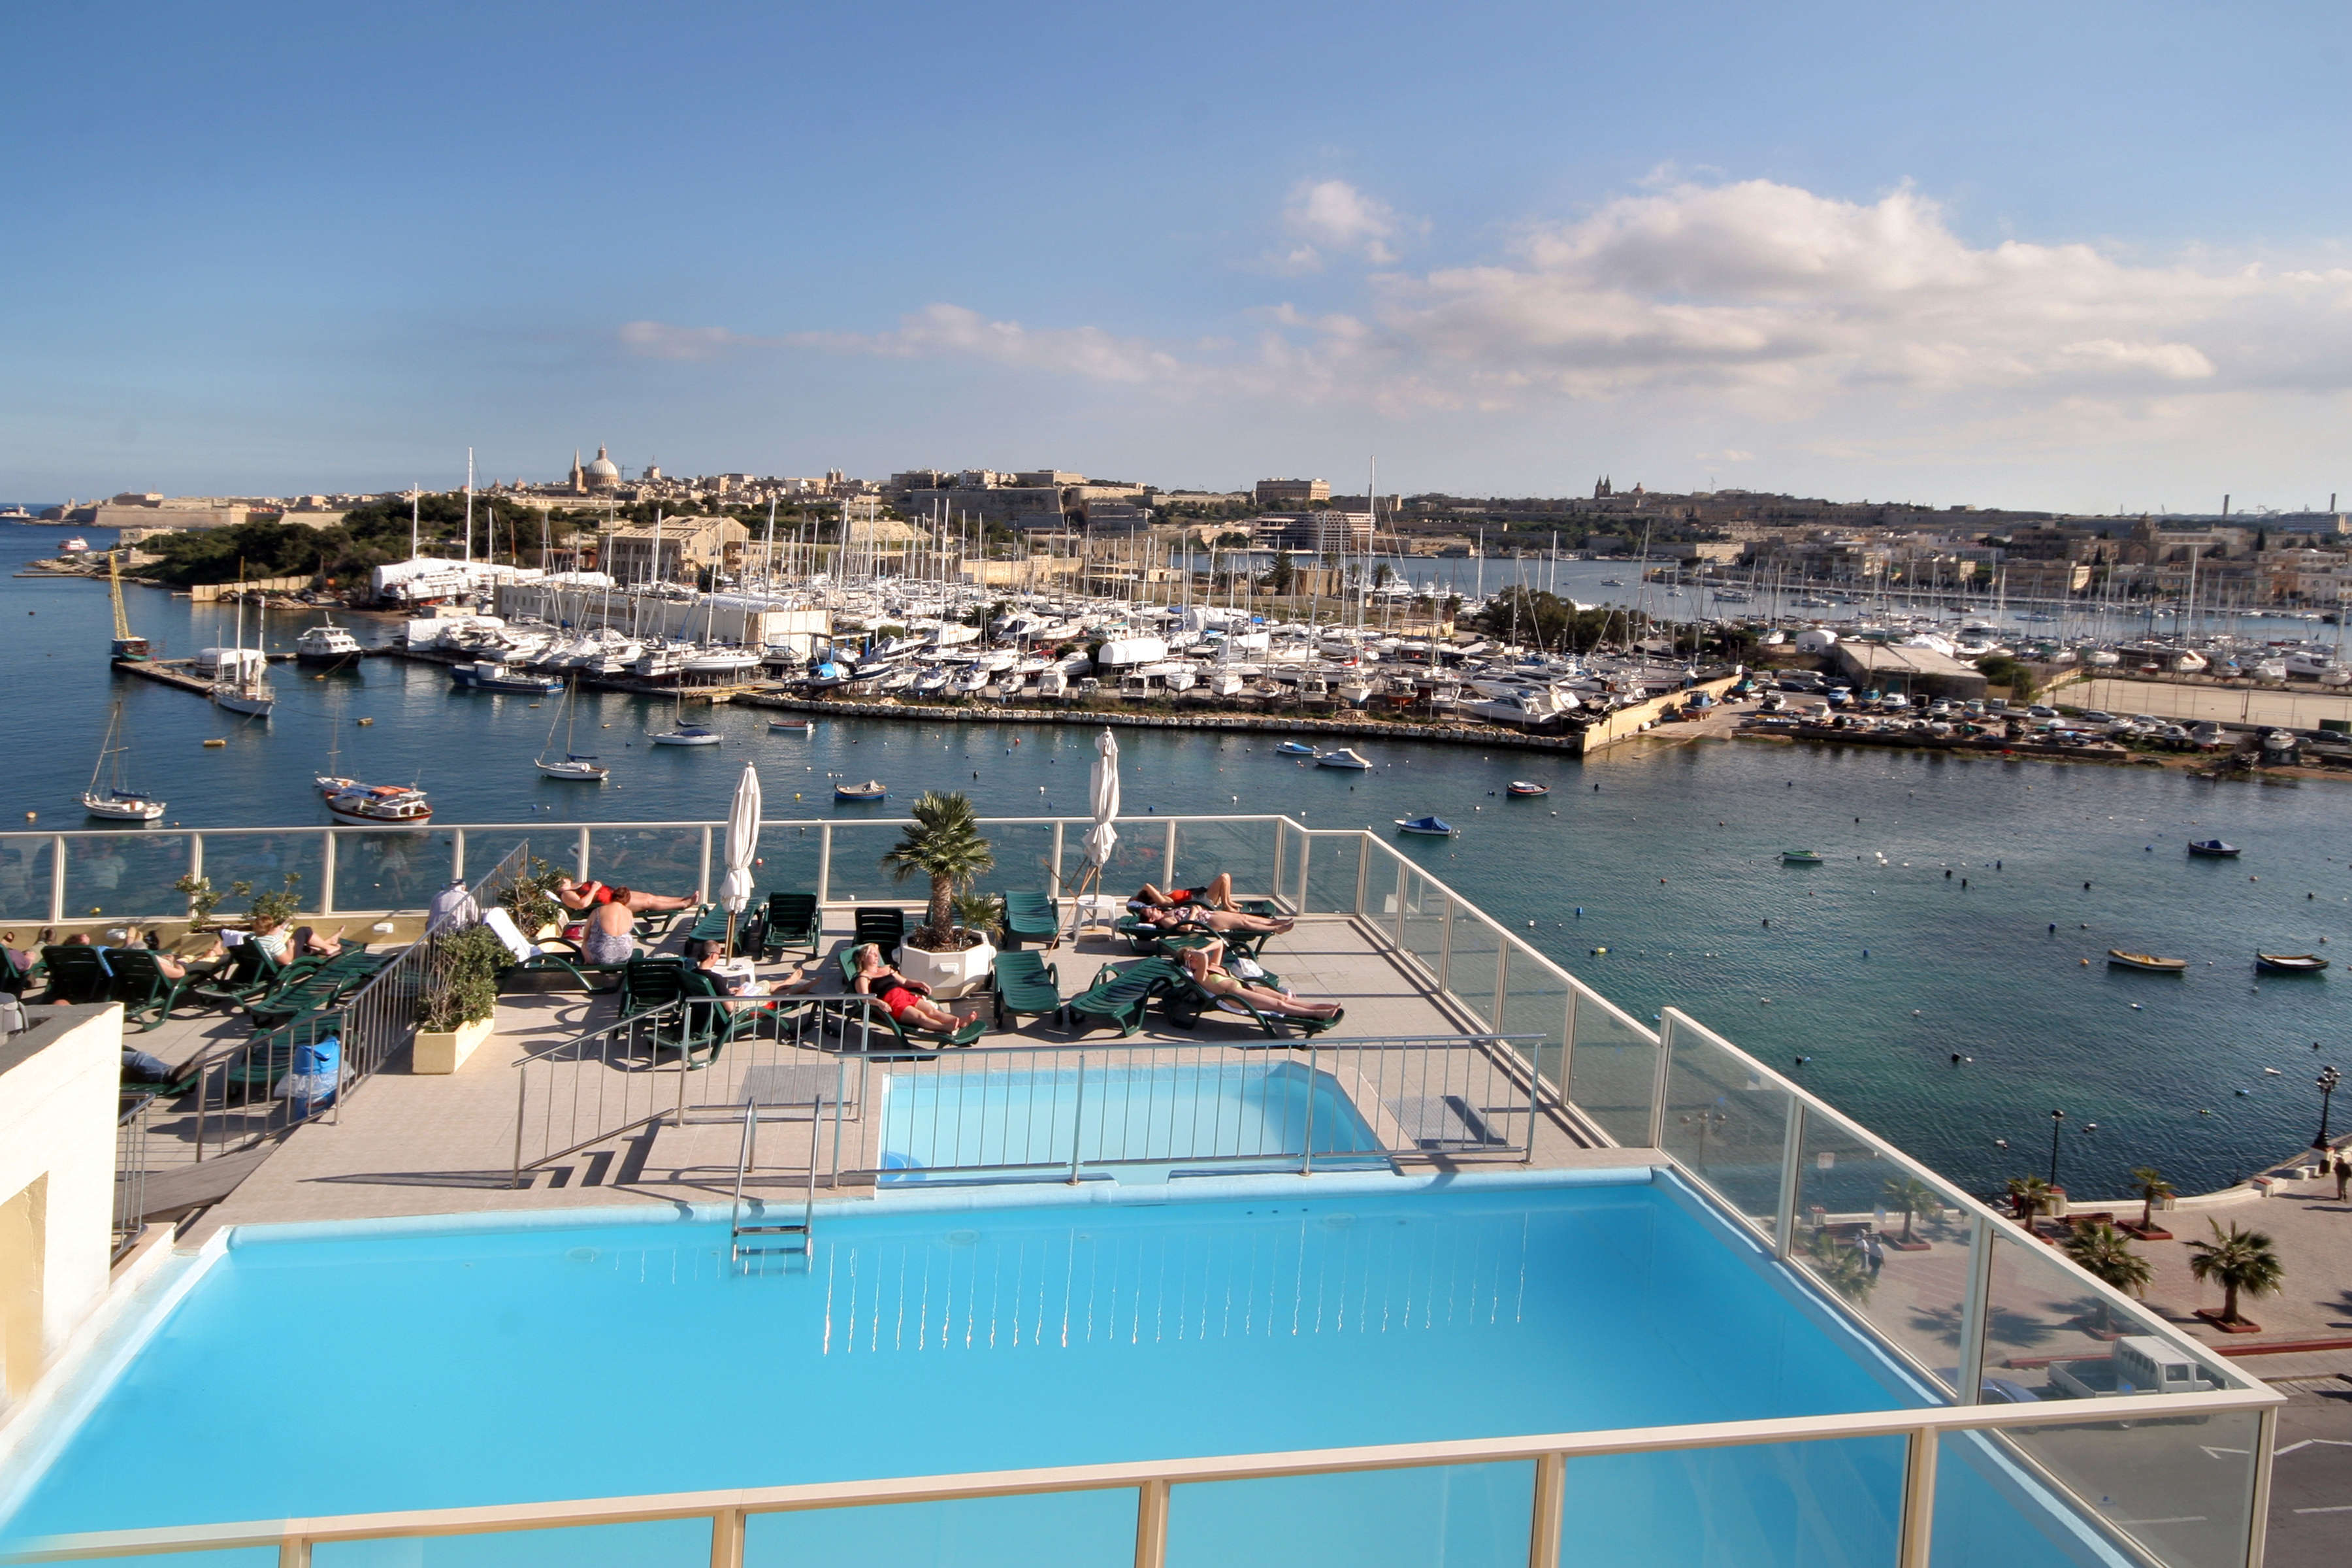 IELS-Malta-Accommodation-Bayview-Hotel-Pool%20and%20Sea%20view-01